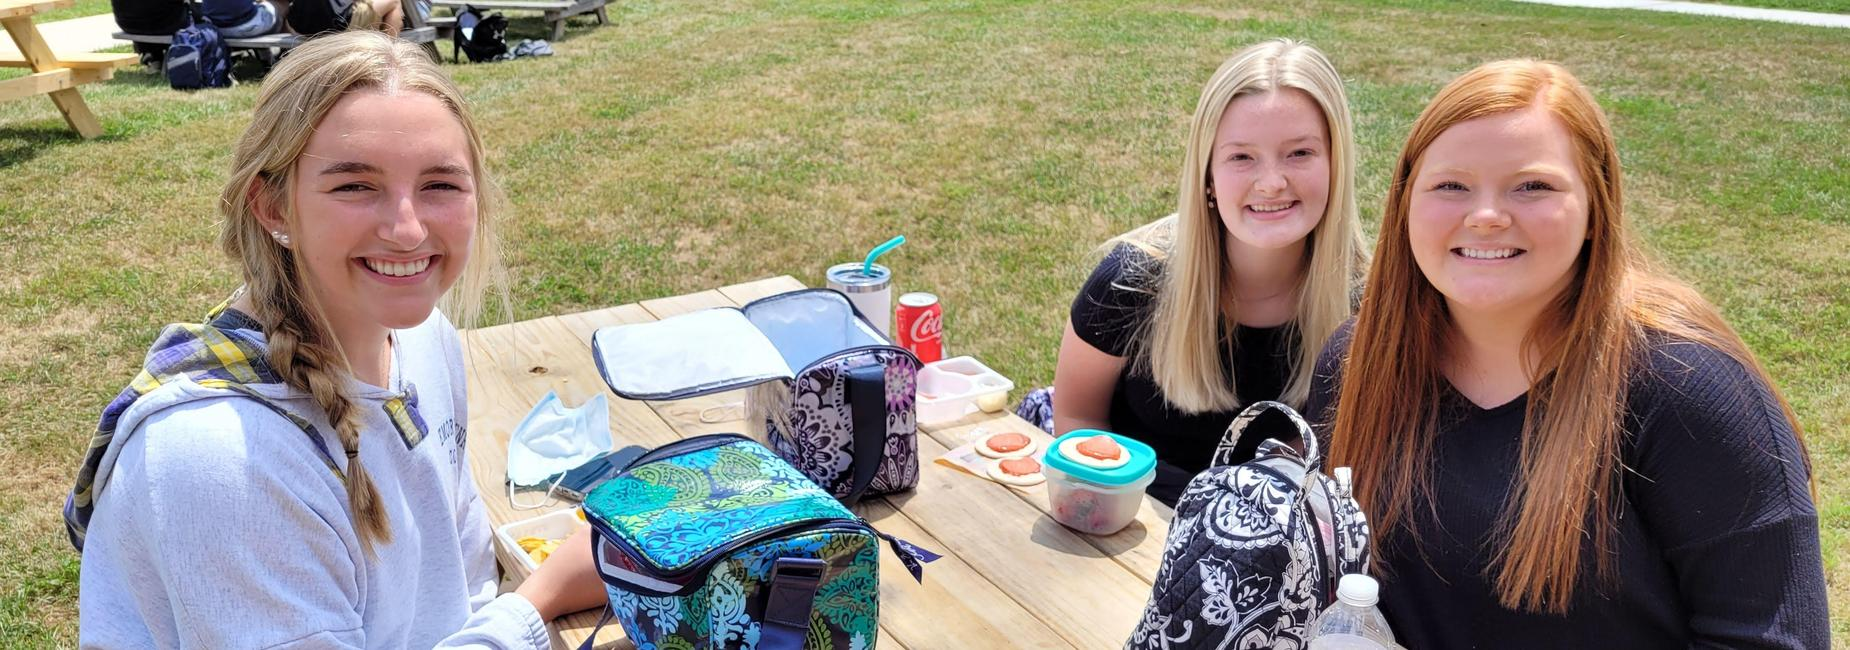 Chilhowie HS students eating lunch outside.